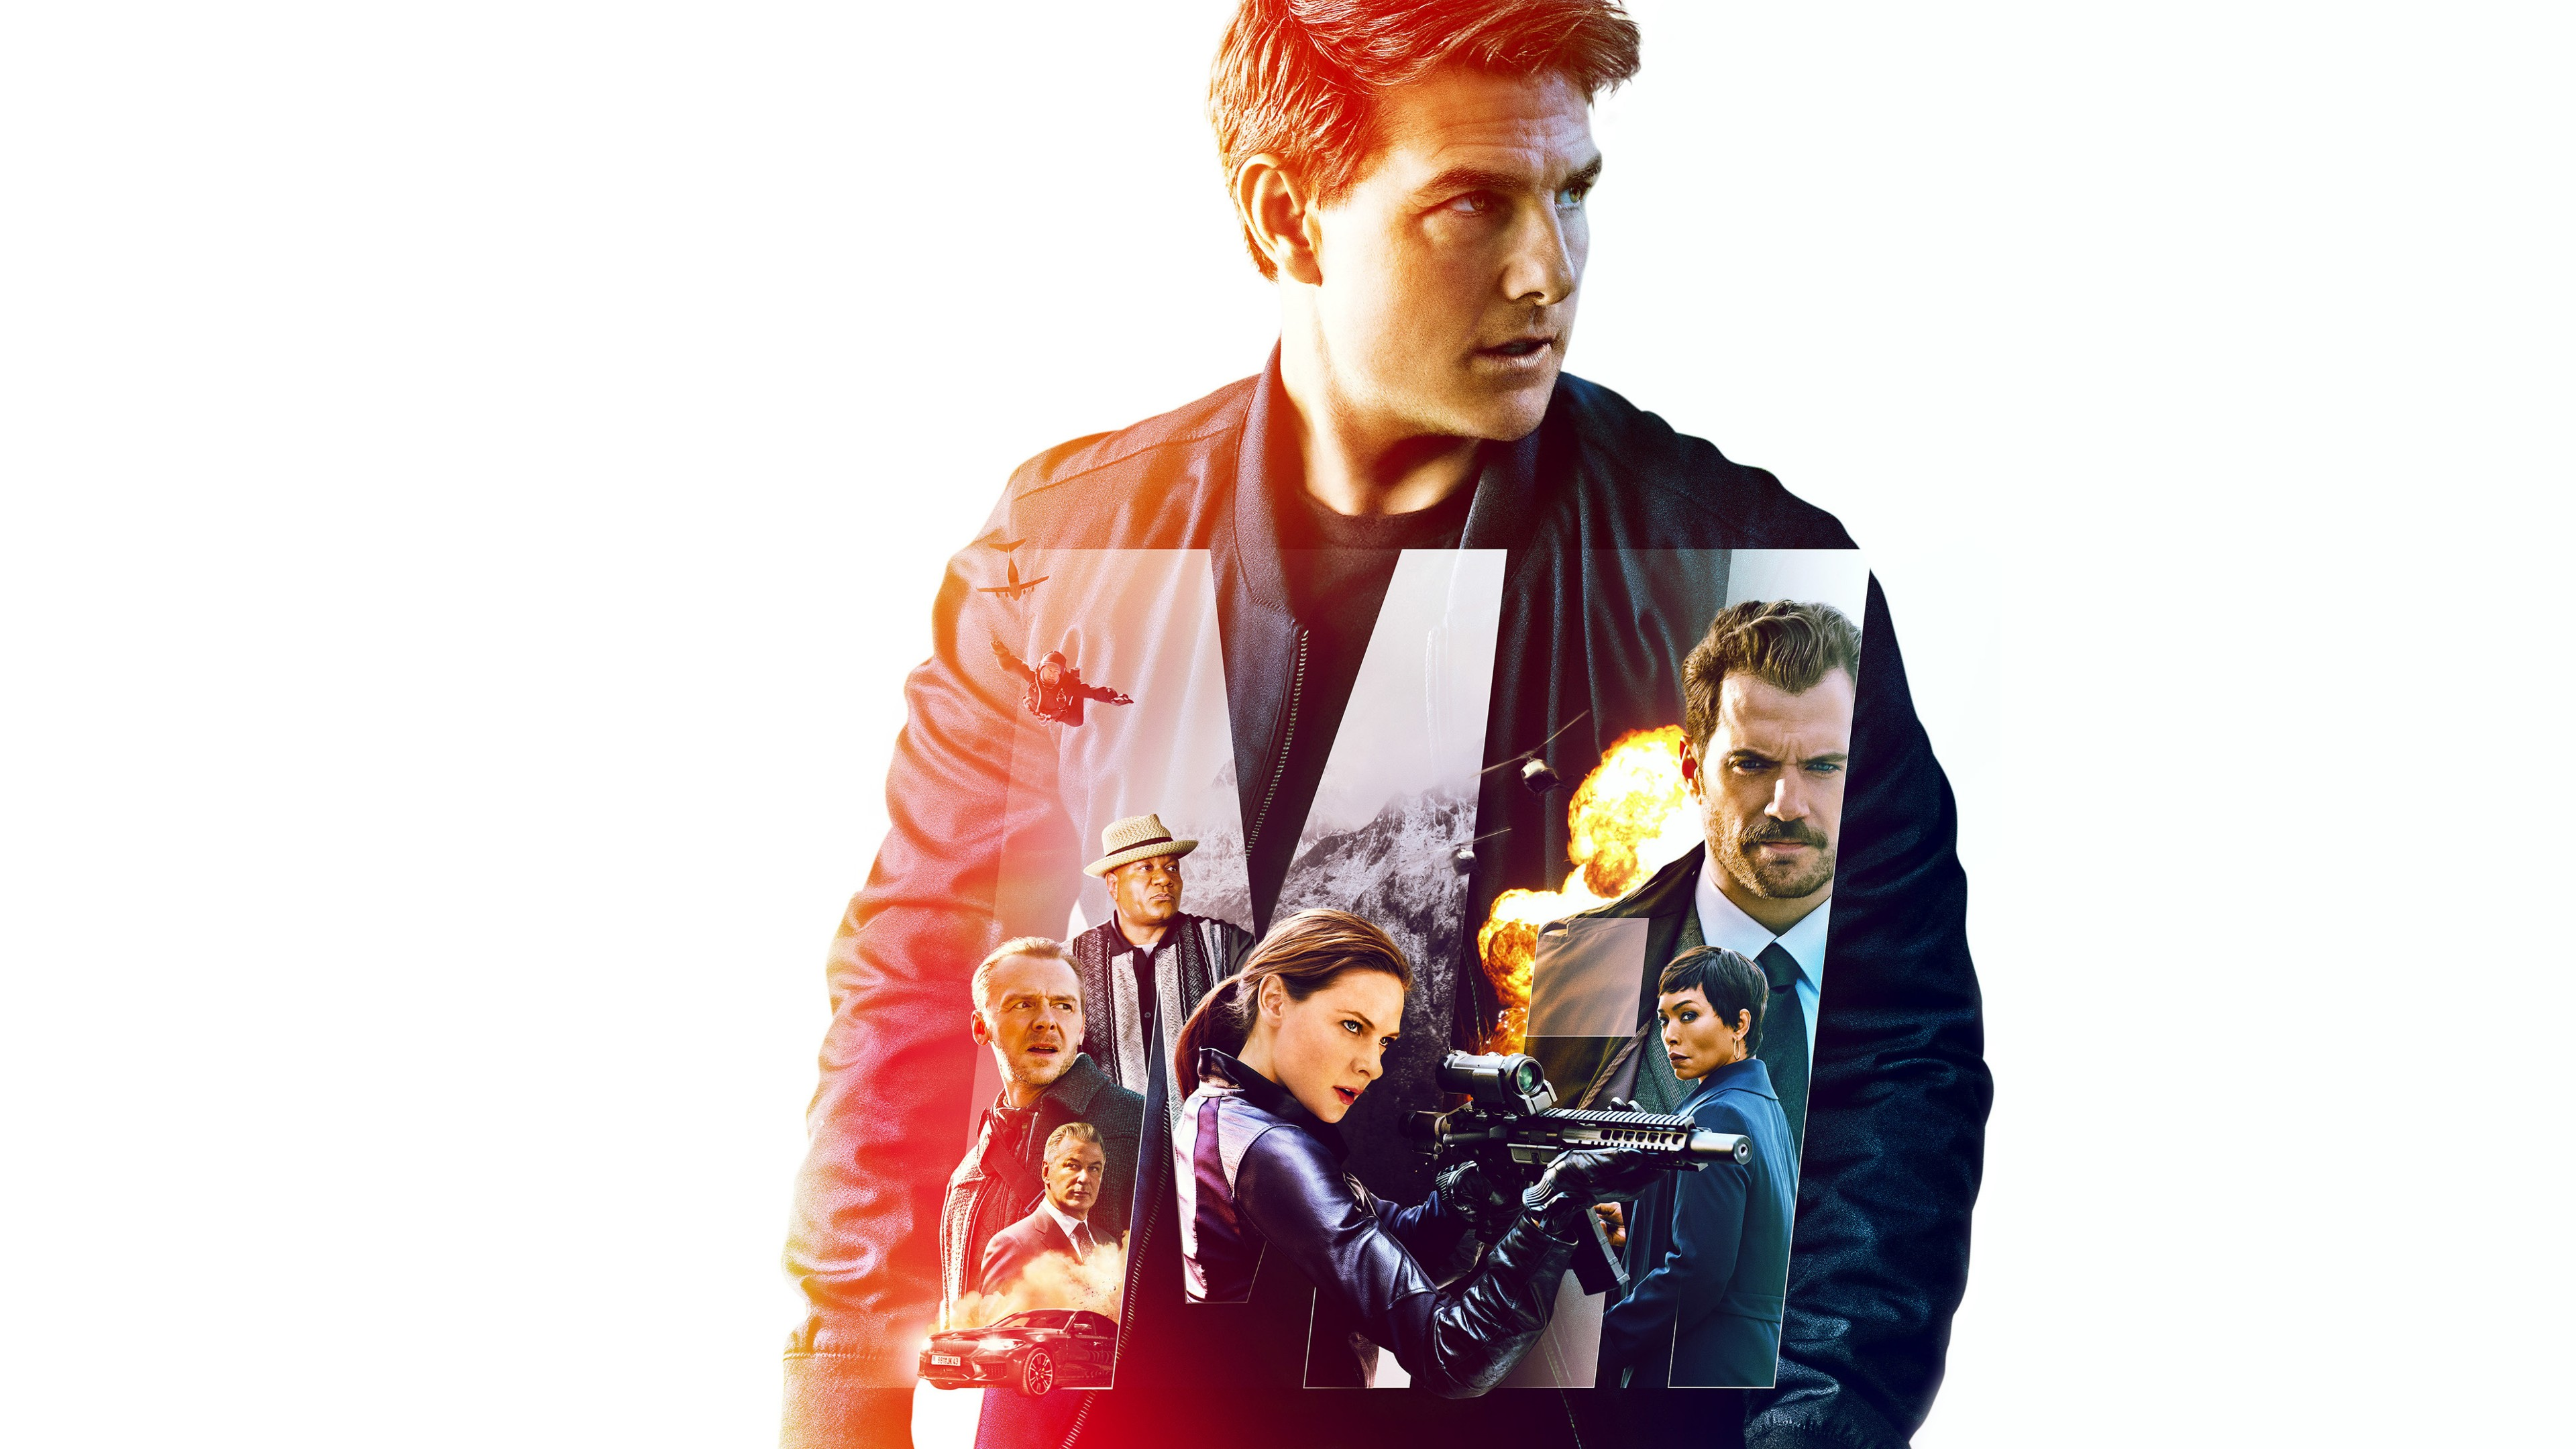 Mission Impossible Fallout 2018 4K Wallpaper Free Download-3840x2160